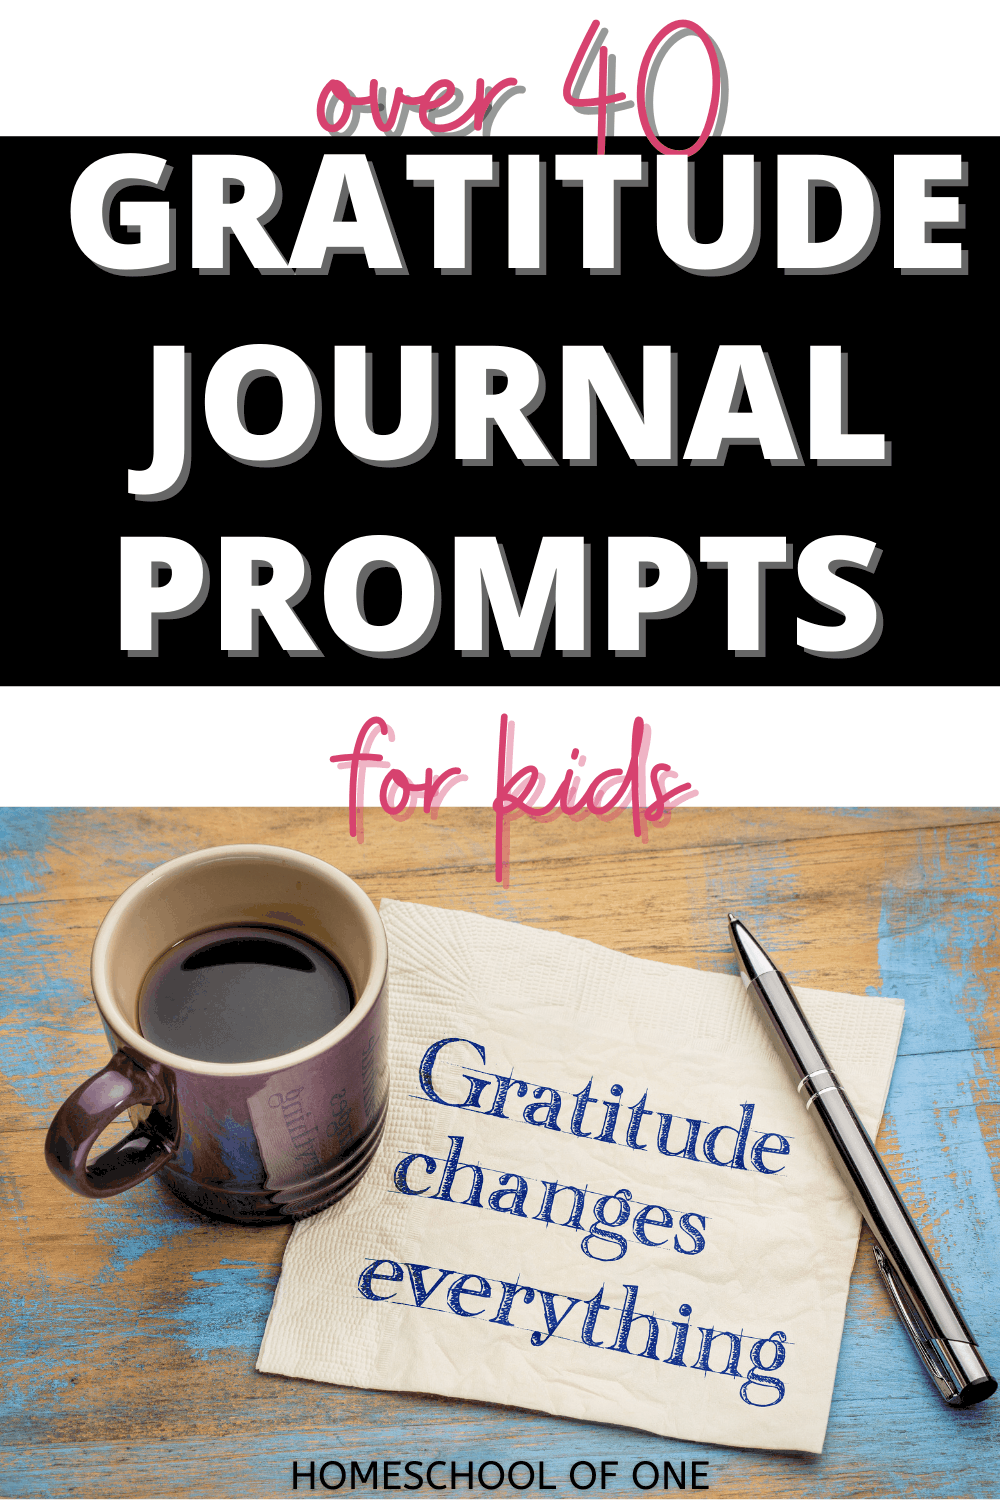 Over 40 awesome gratitude journal prompts for kids. Writing prompts for all holidays including Halloween, Thanksgiving, Christmas, New Years, Valentines, Easter and Summer. #gratitude #journalprompts #writingprompts